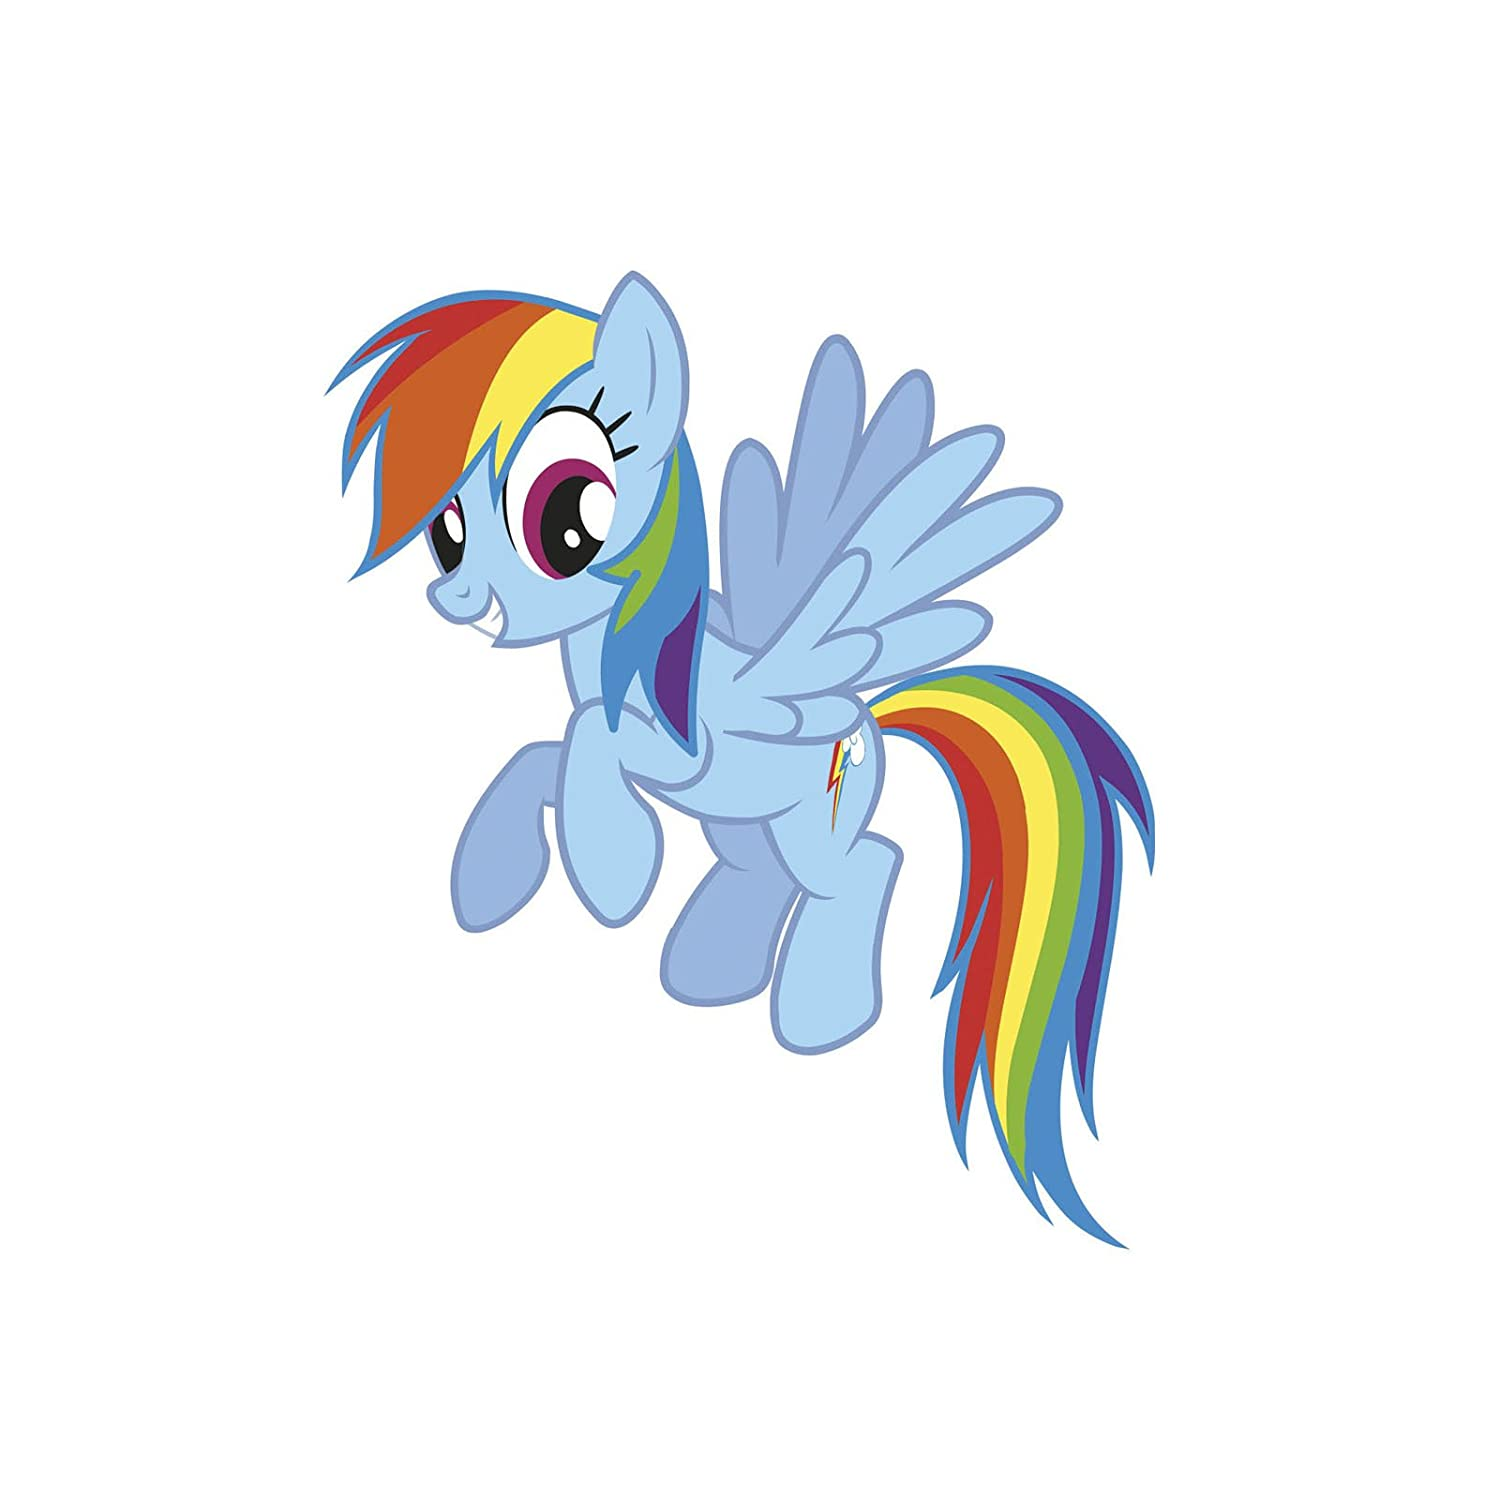 RoomMates My Little Pony Rainbow Dash Peel And Stick Giant Wall Decals